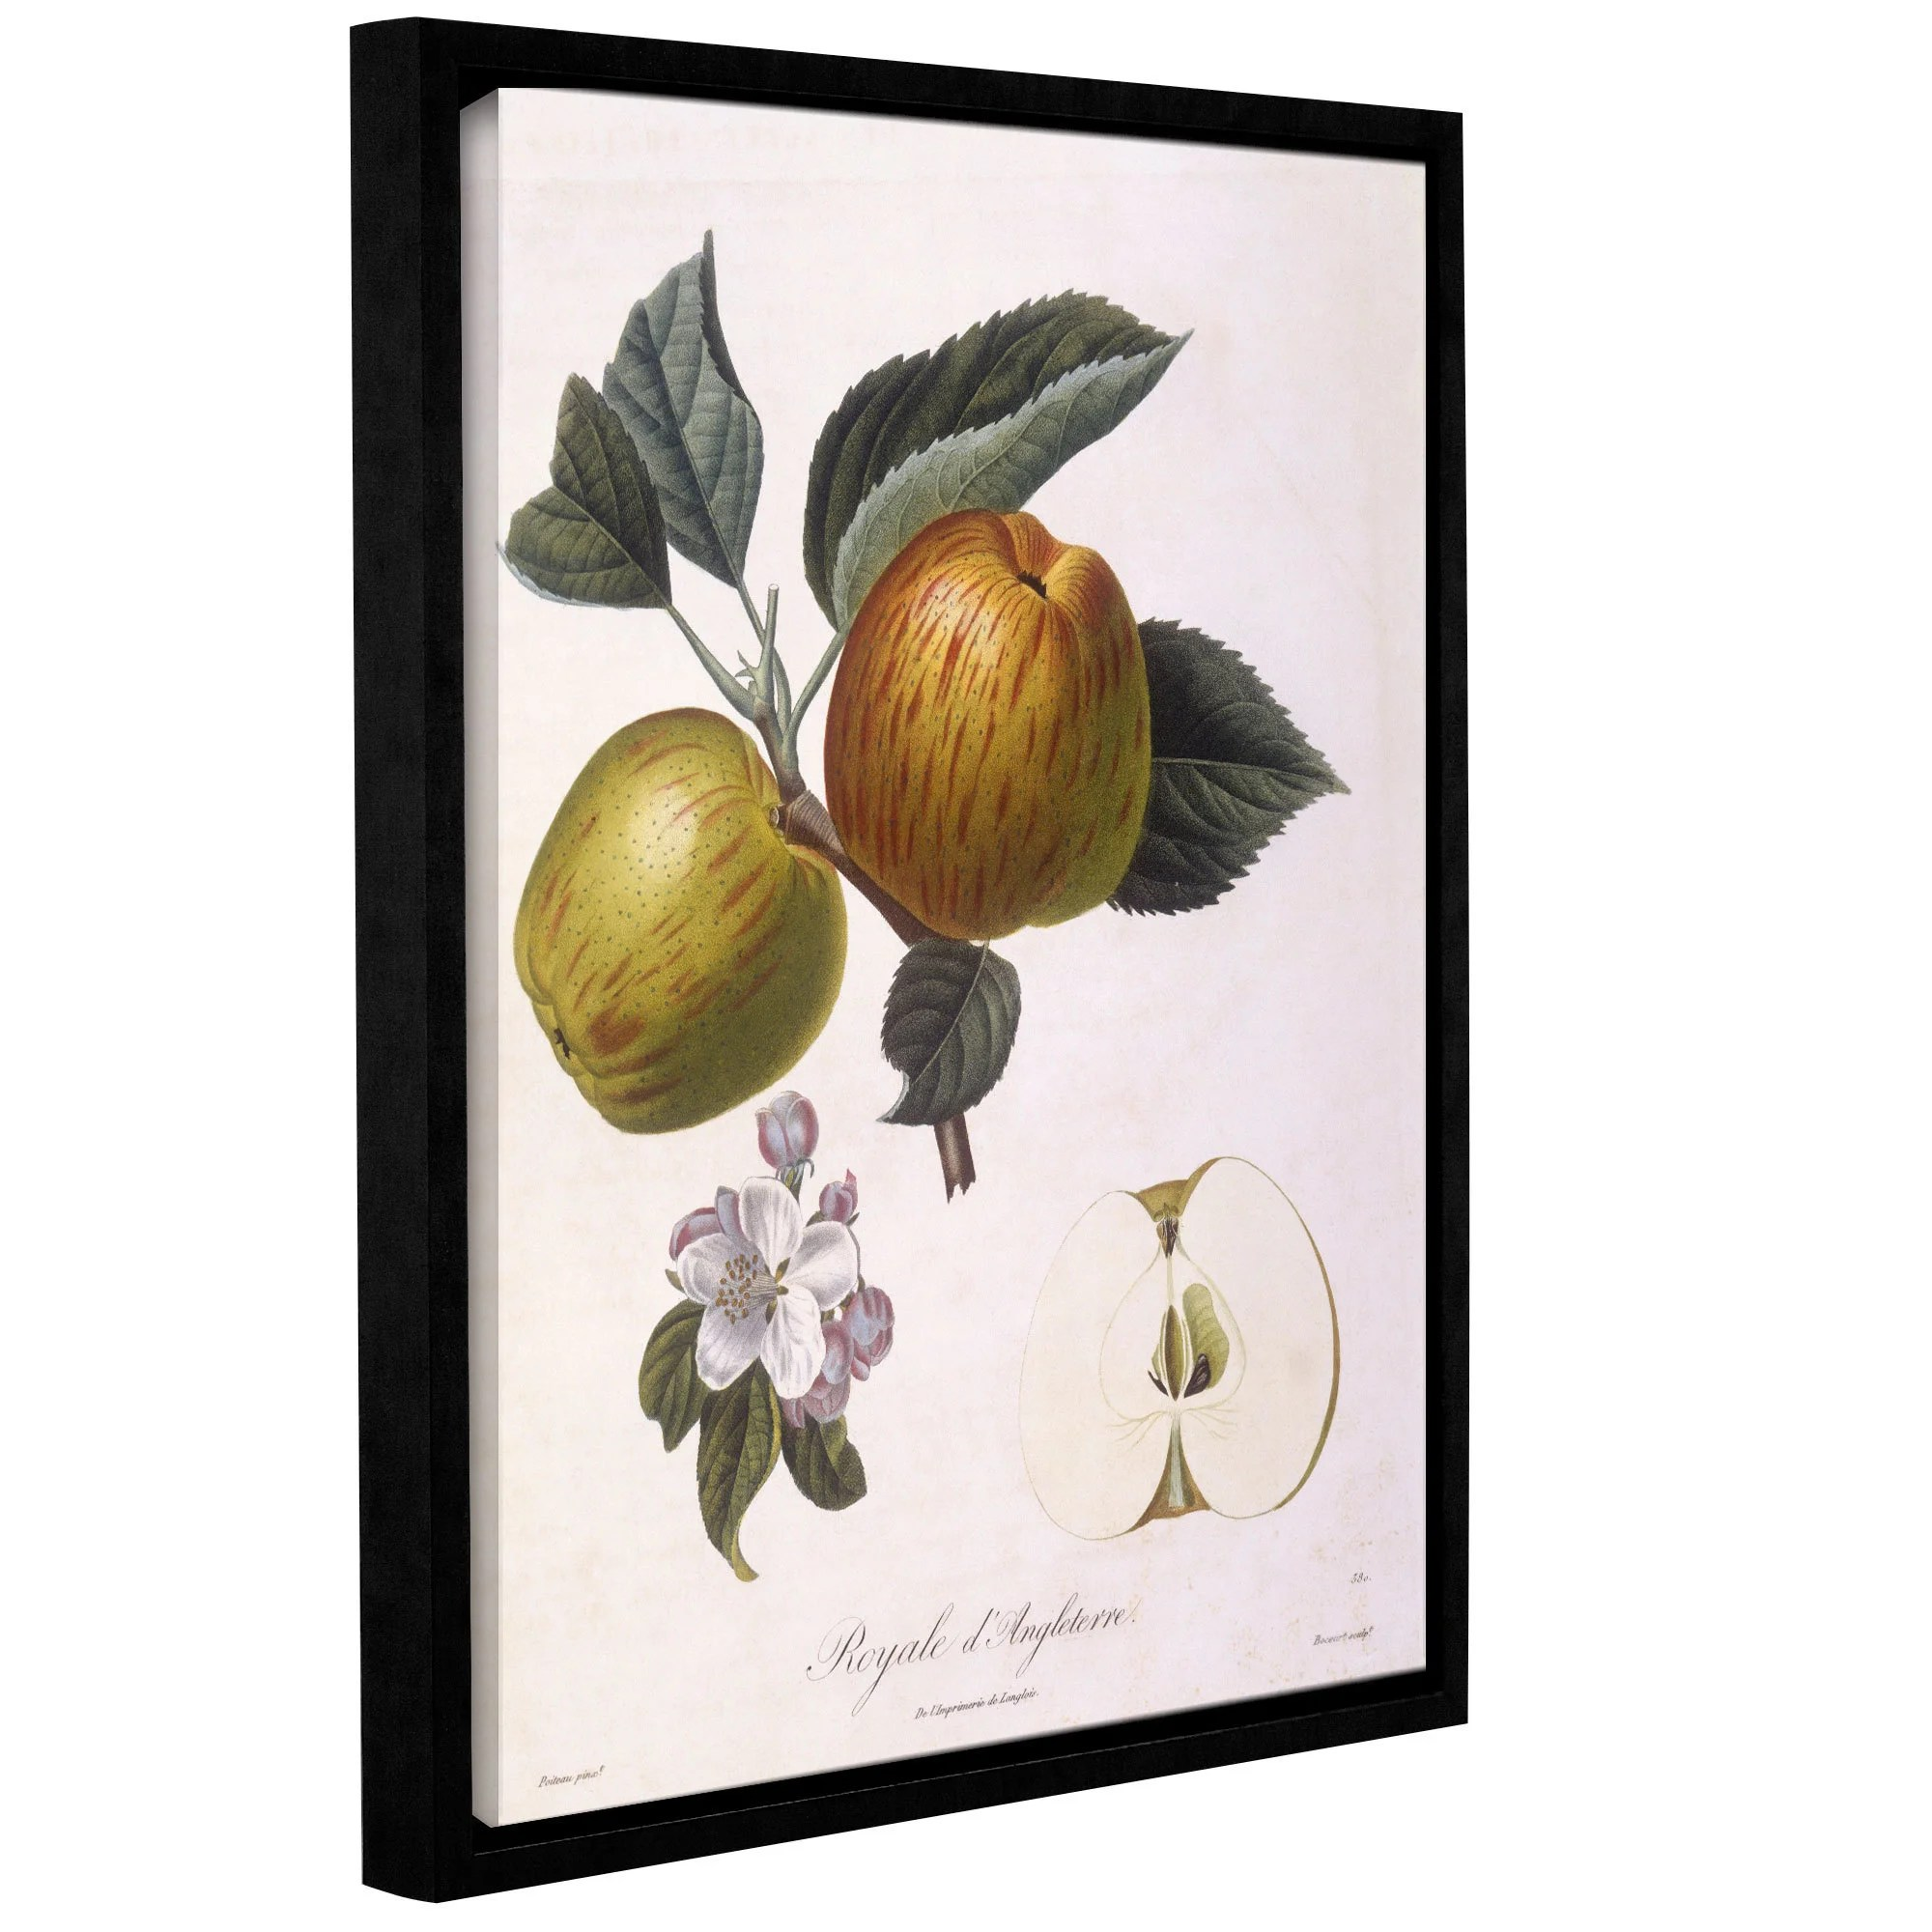 Pierre Antoine Poiteau's Apple, Royale D'Angleterre, Gallery Wrapped Floater-framed Canvas - multi